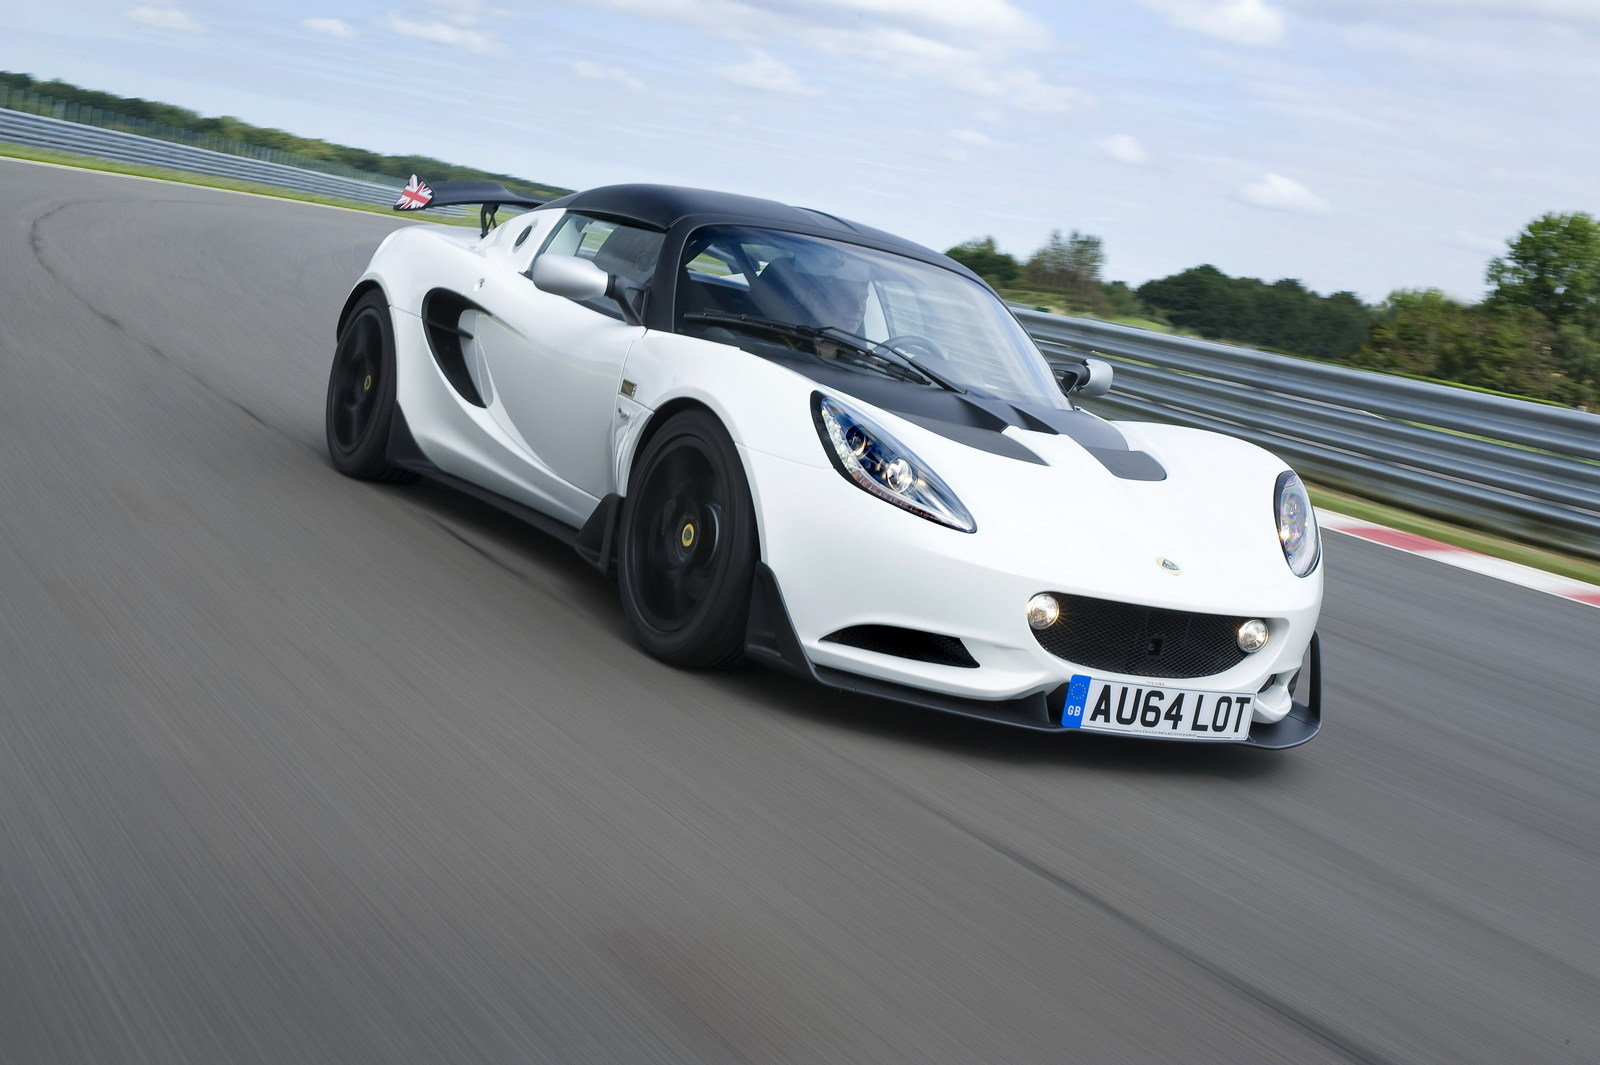 2015 Lotus Elise S Review | tinadh.com